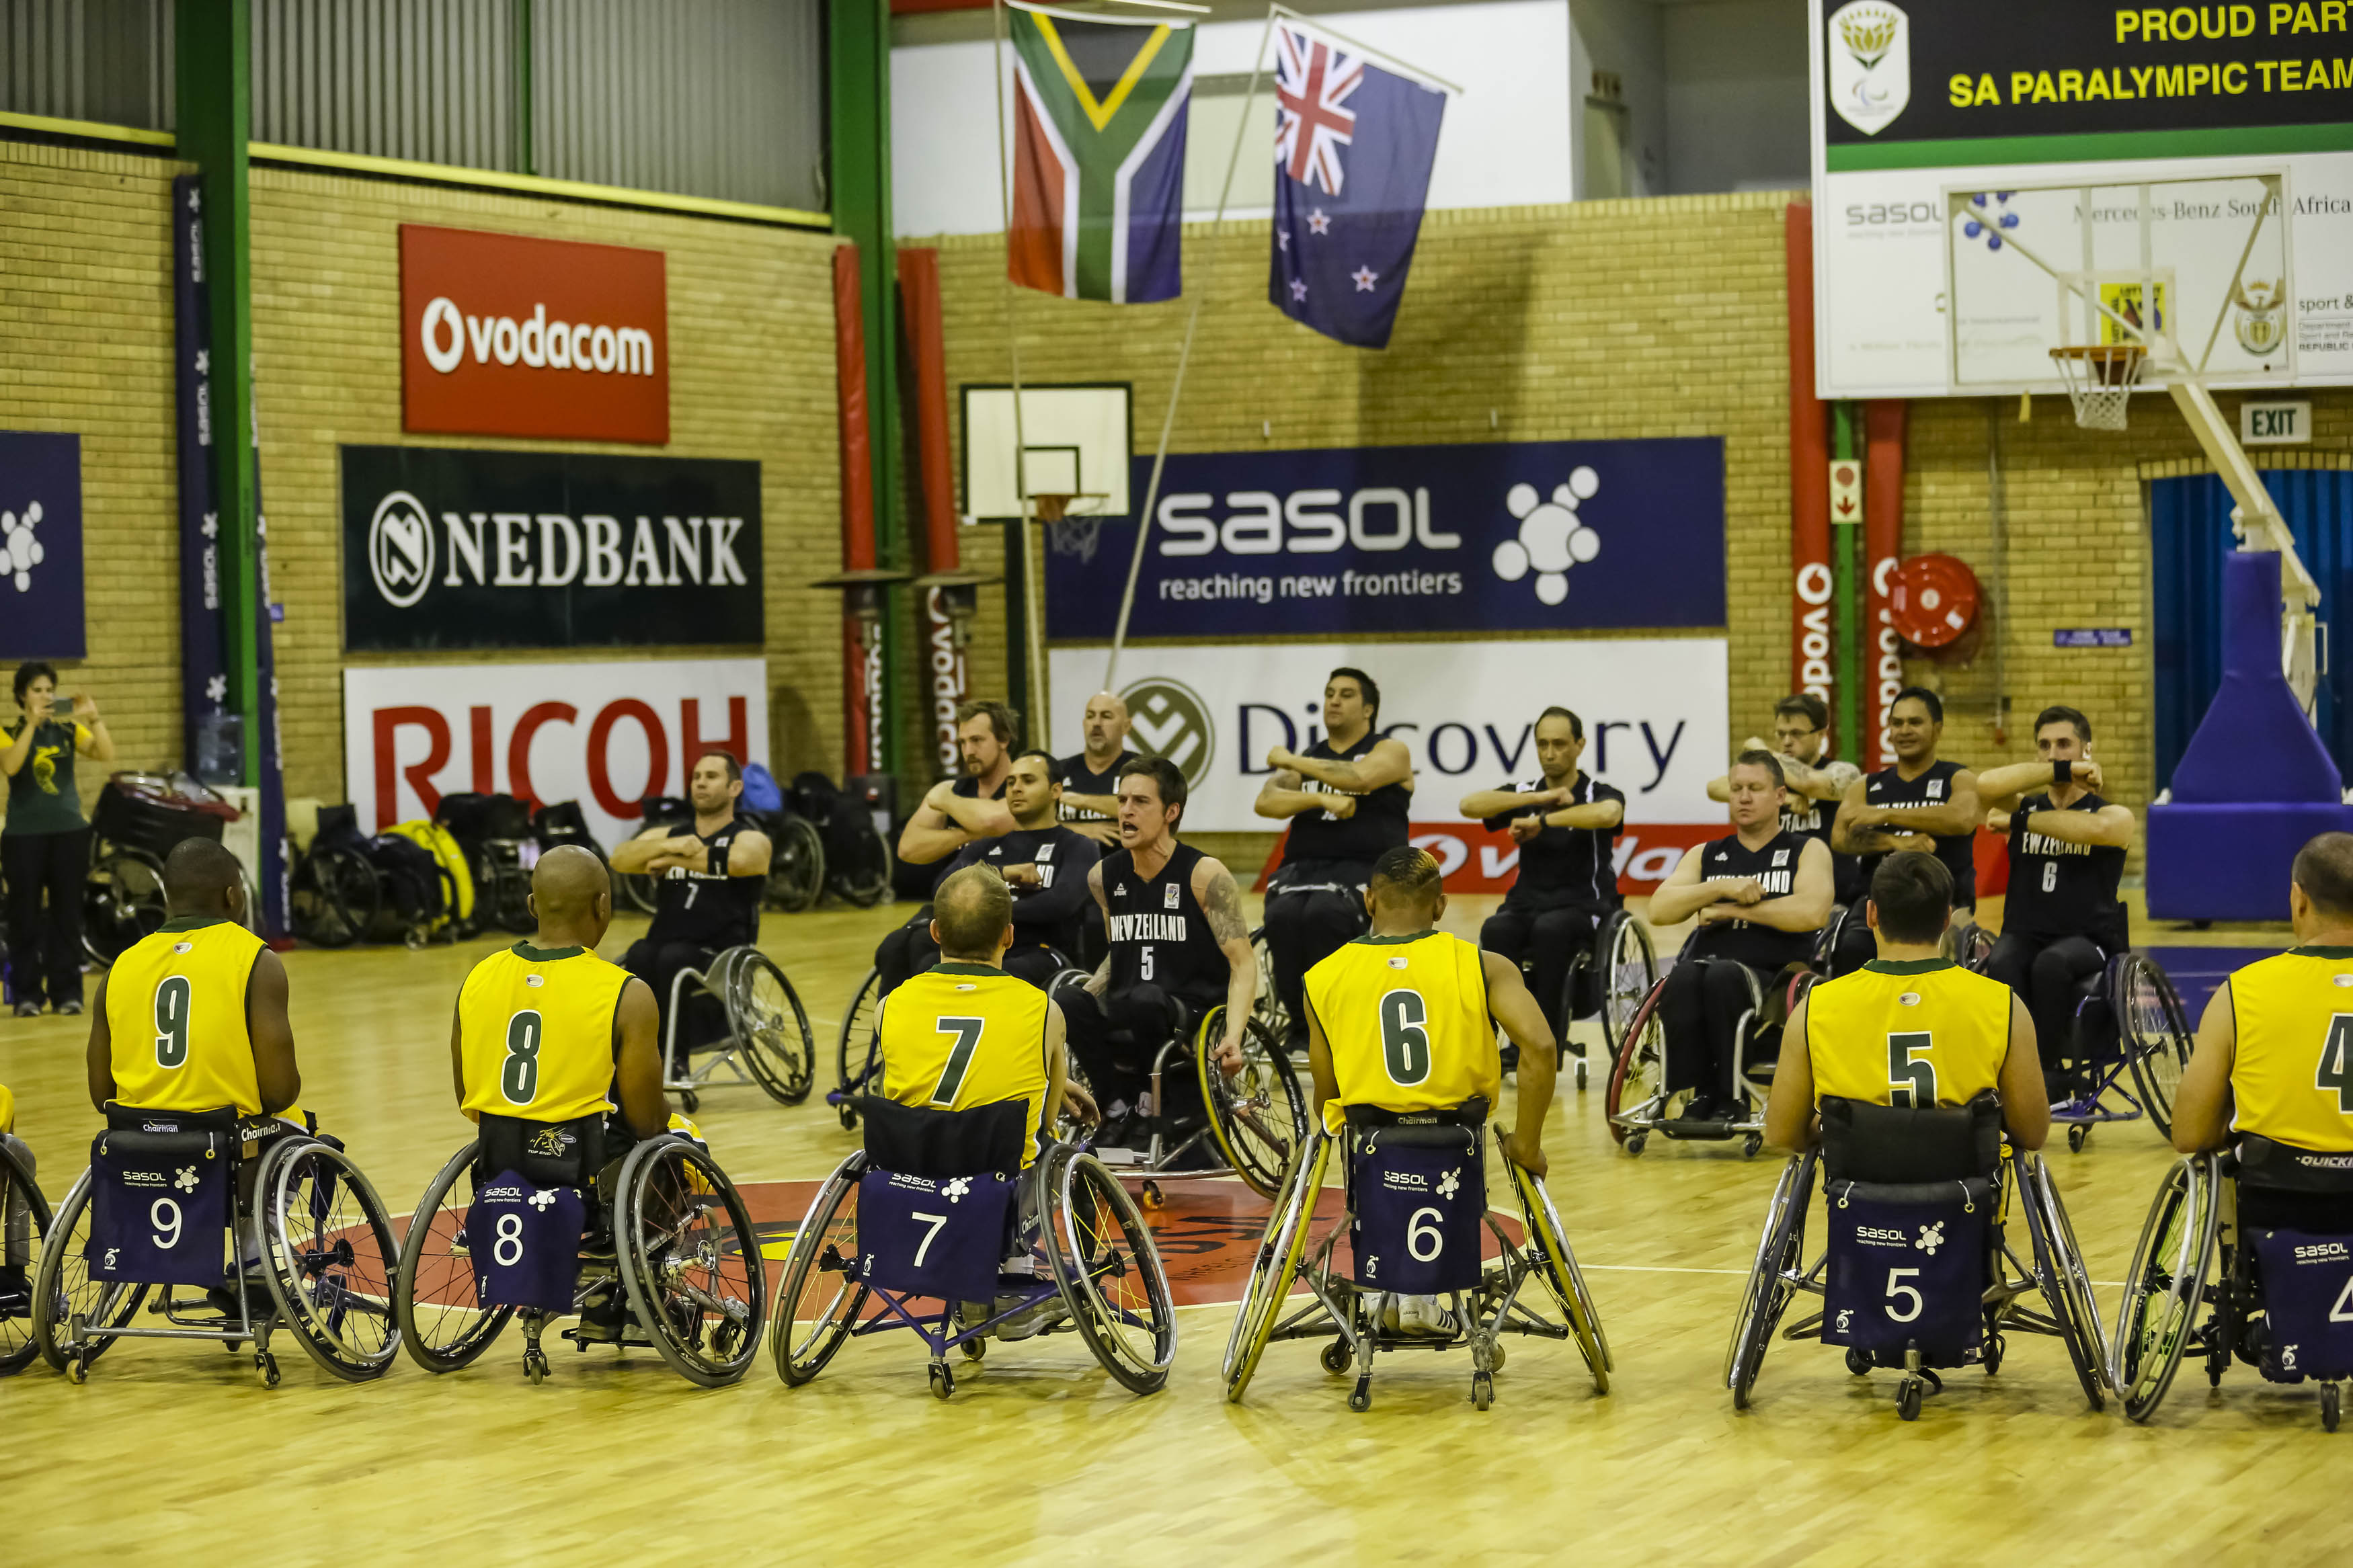 SA wheelchair basketballers bulldoze NZ Roller Blacks